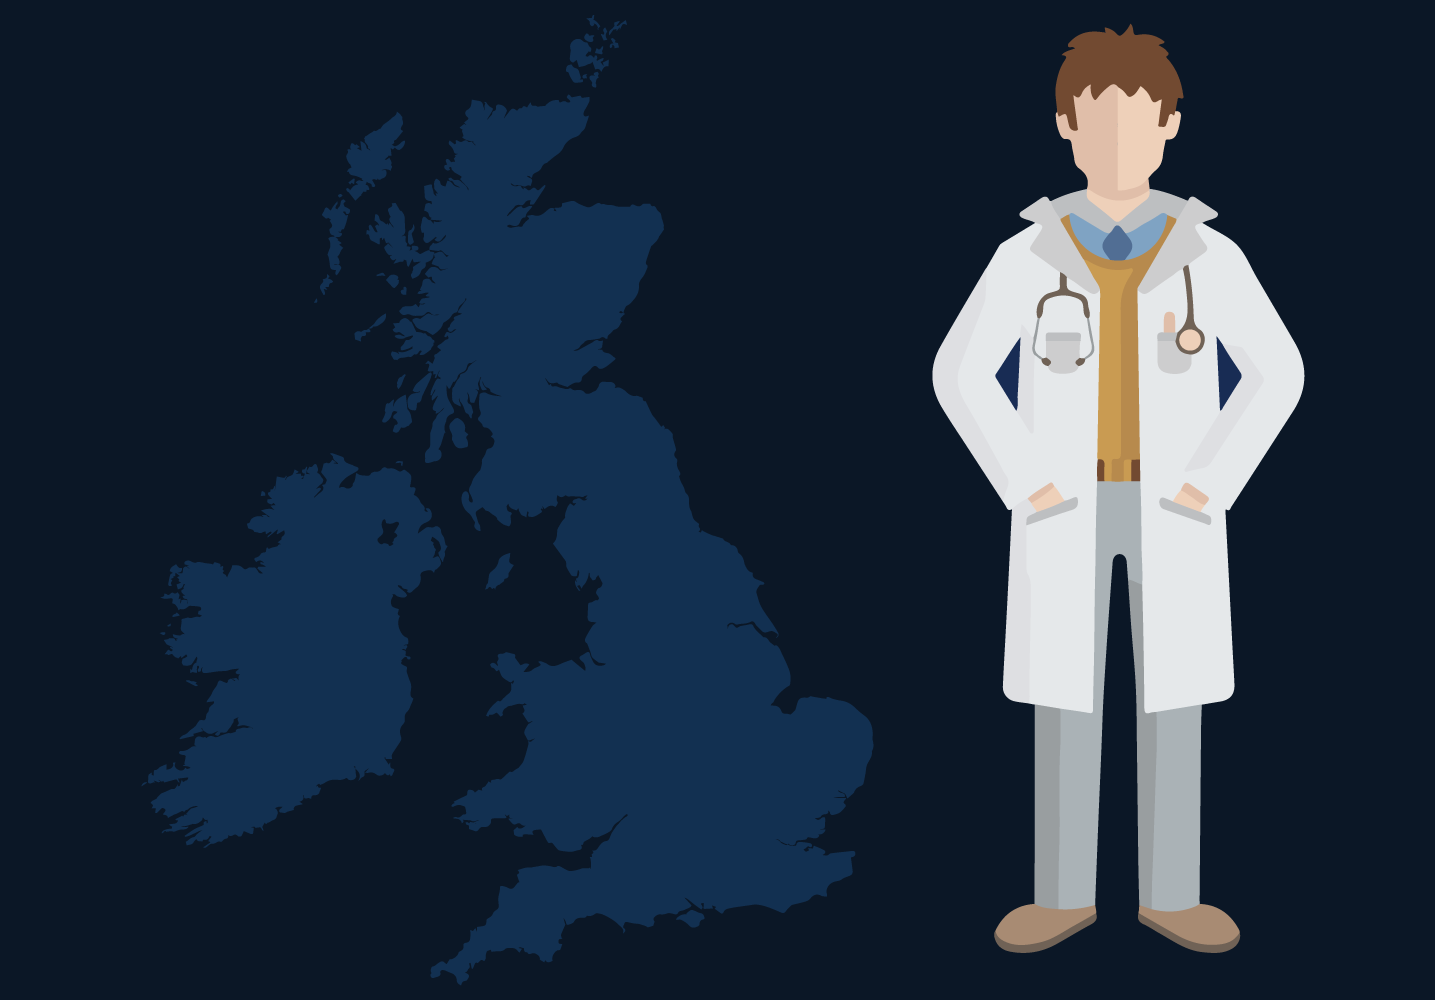 Illustration of a doctor and a map of the UK